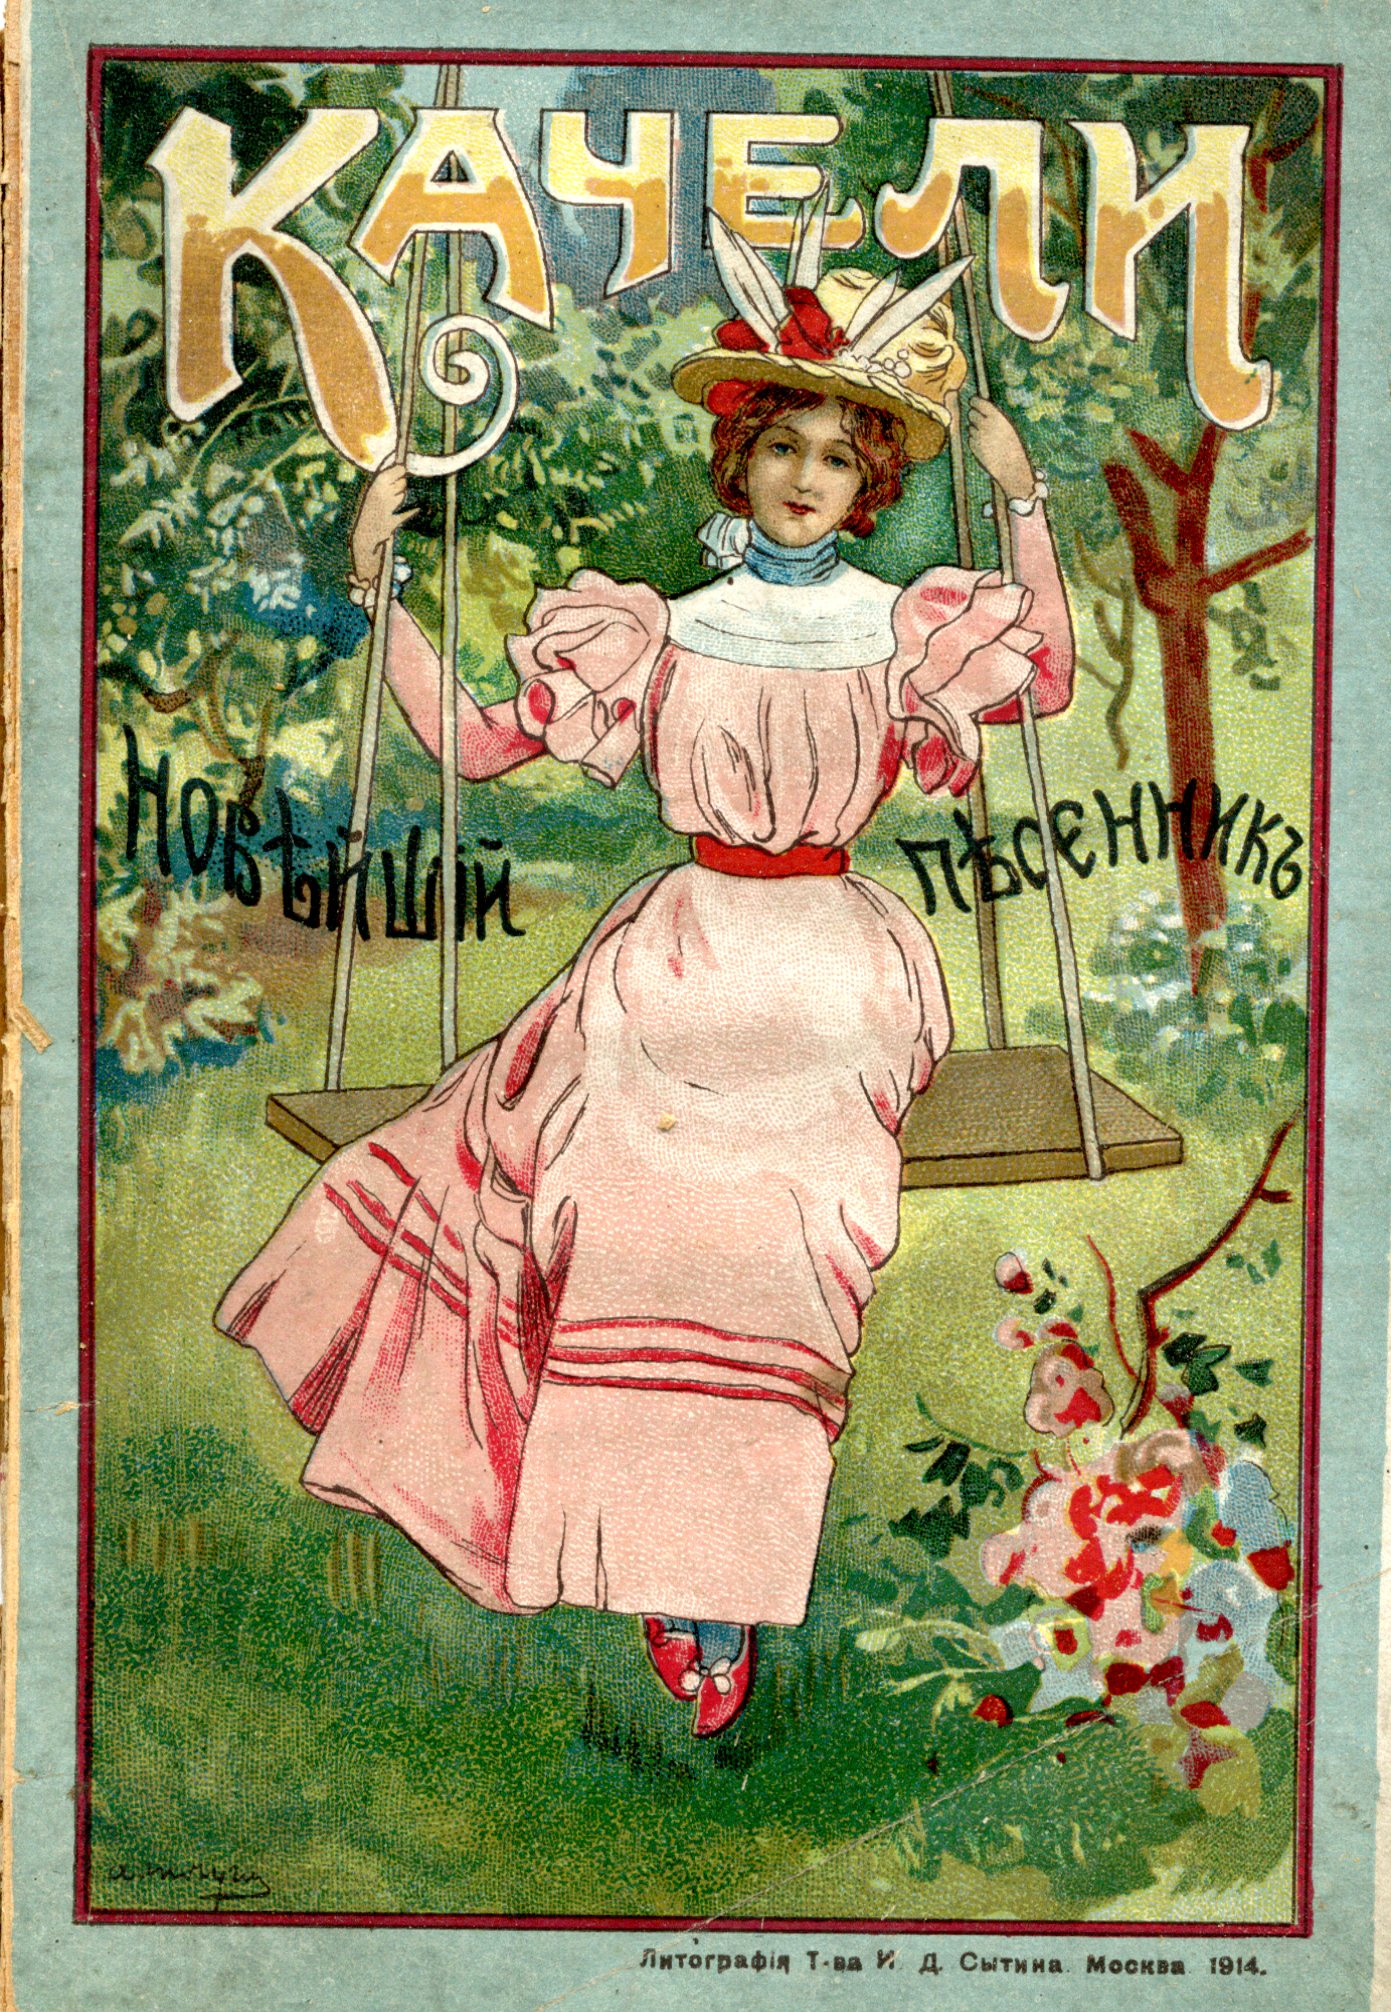 Cover of Russian pamphlet from collection depicts woman on swing